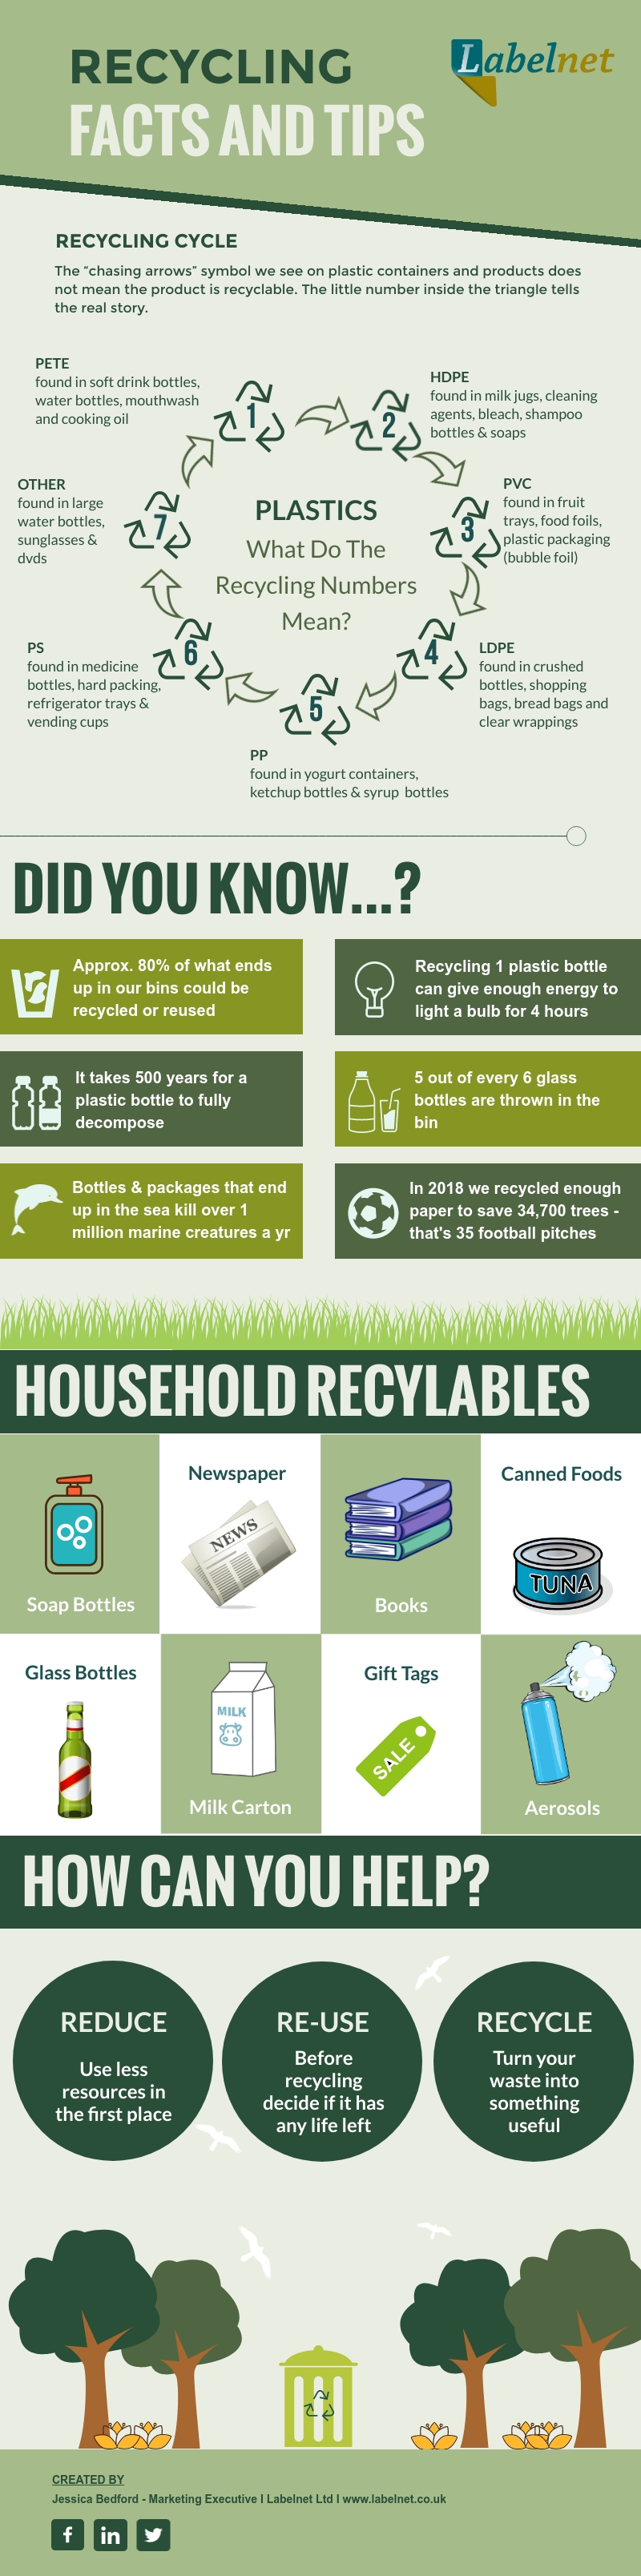 recycling facts and tips banner